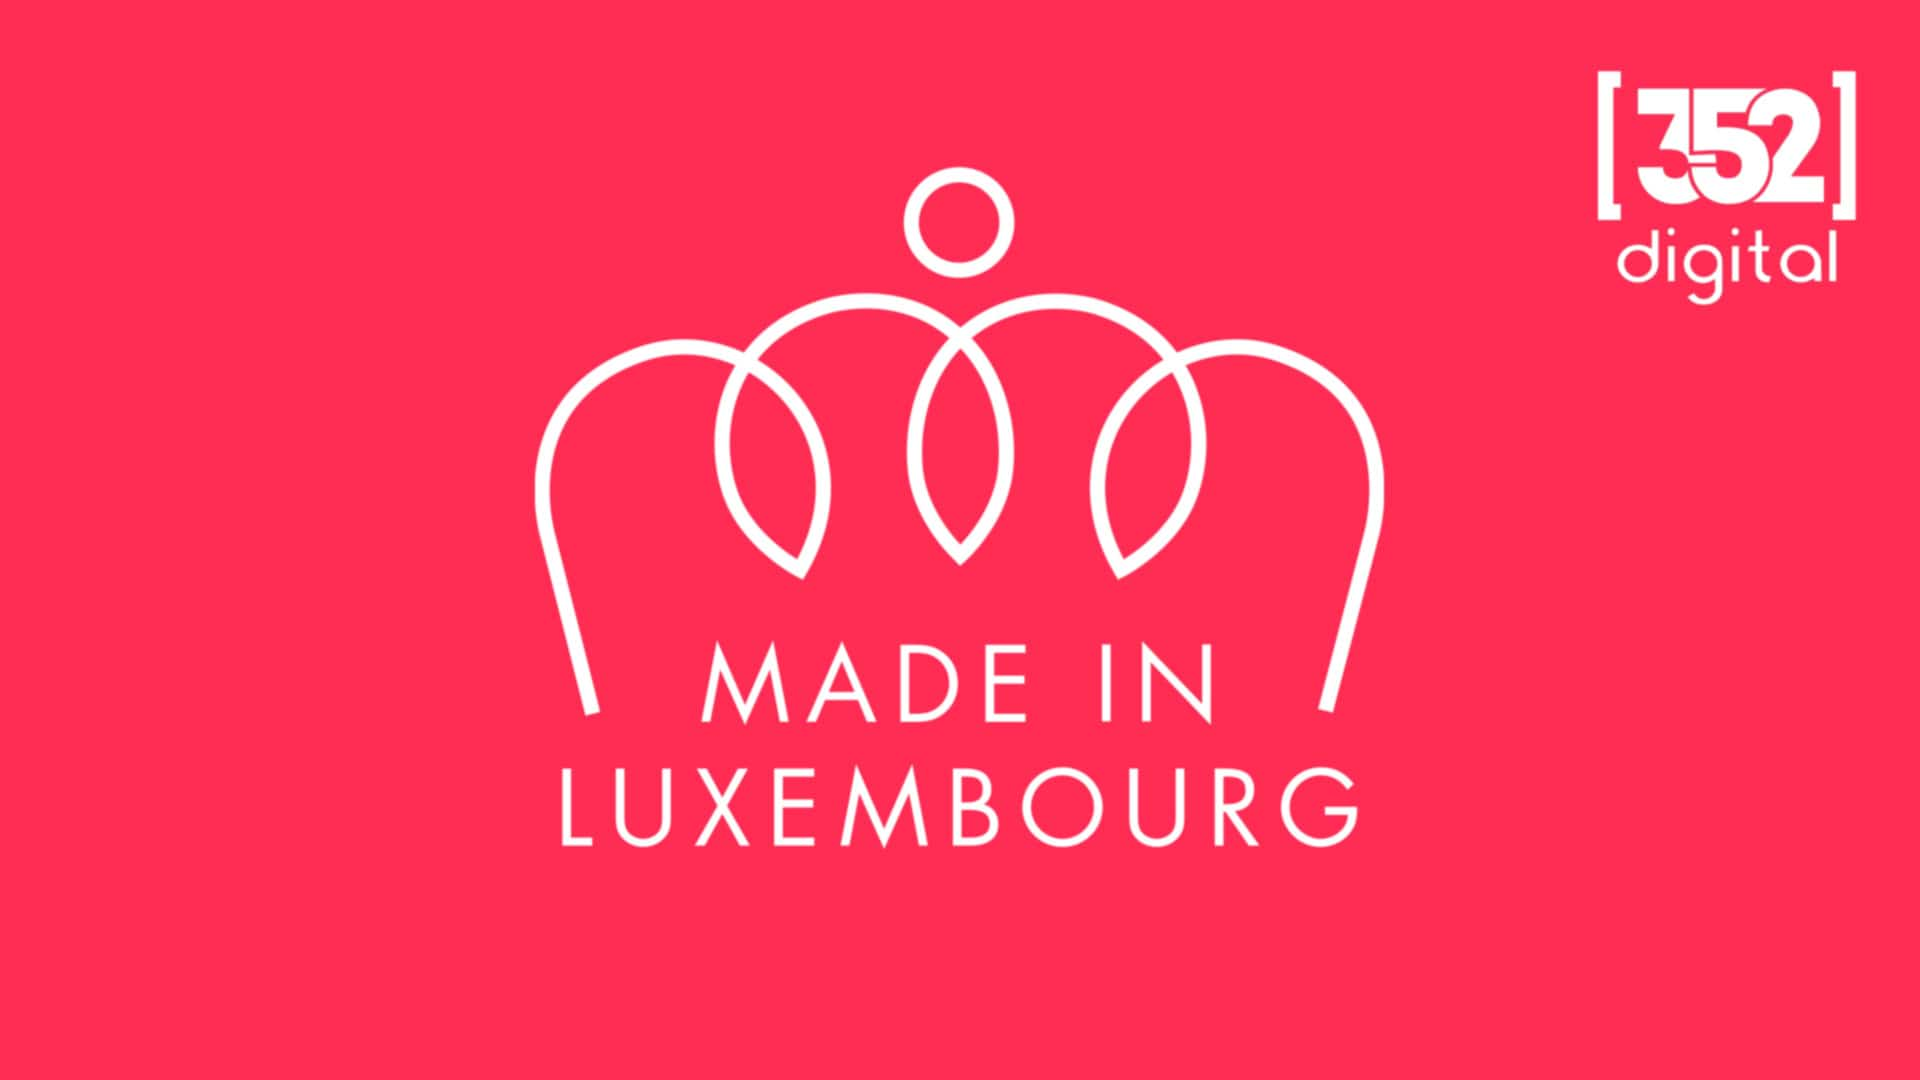 352 Digital Services are made in Luxembourg